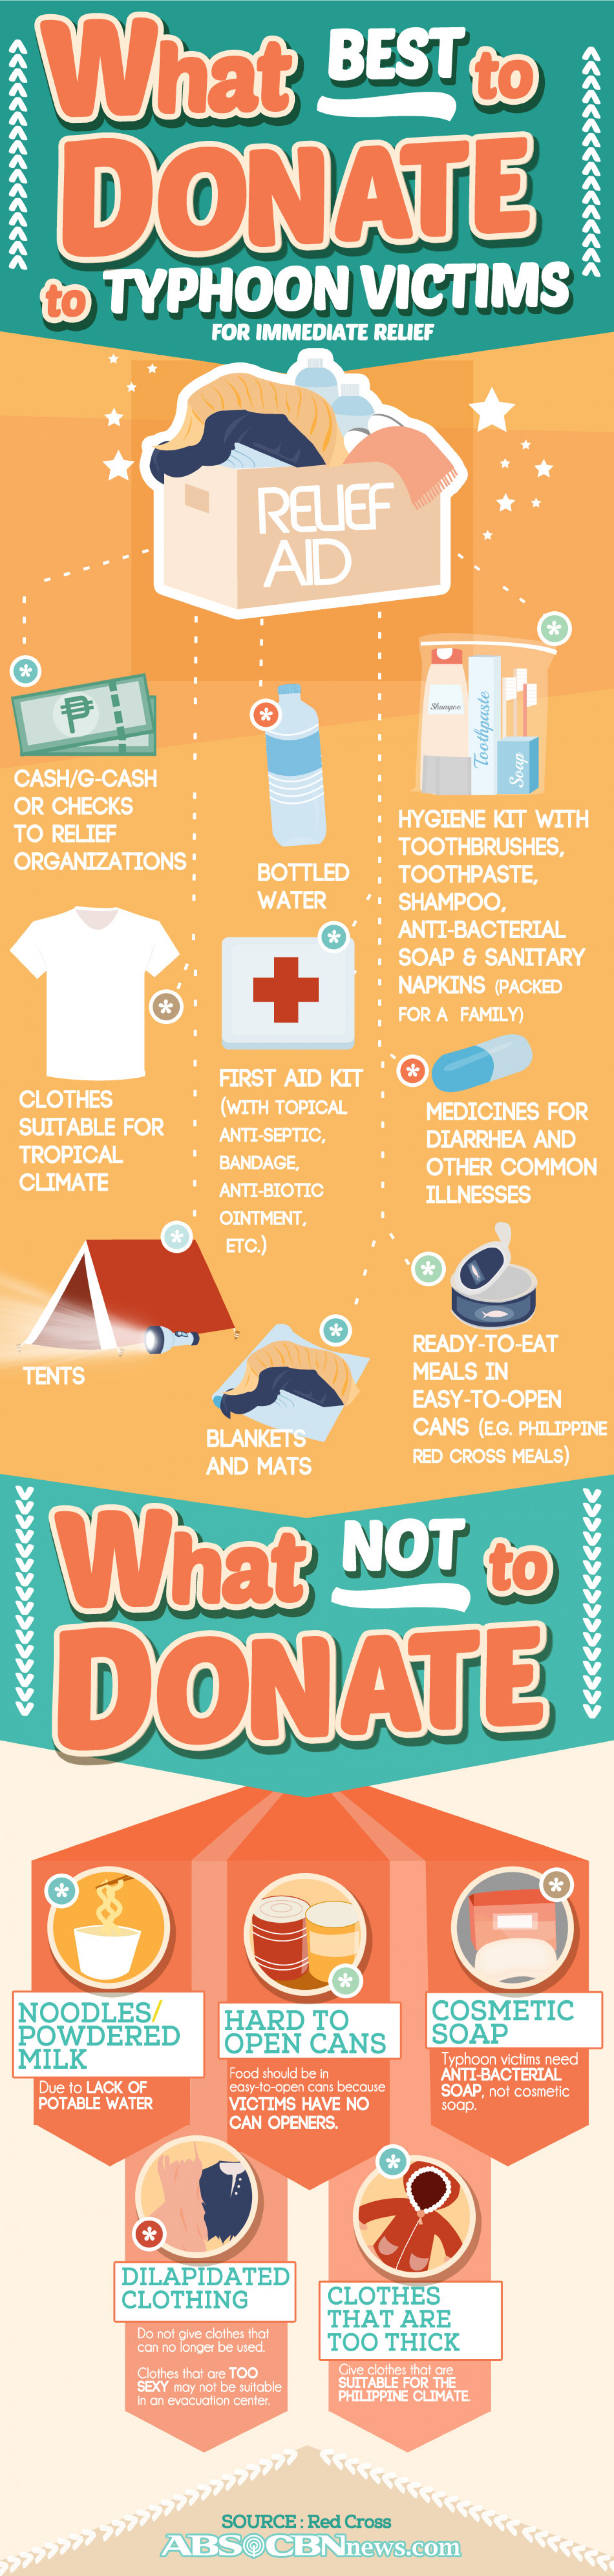 Donations for Typhoon Victims Infographic